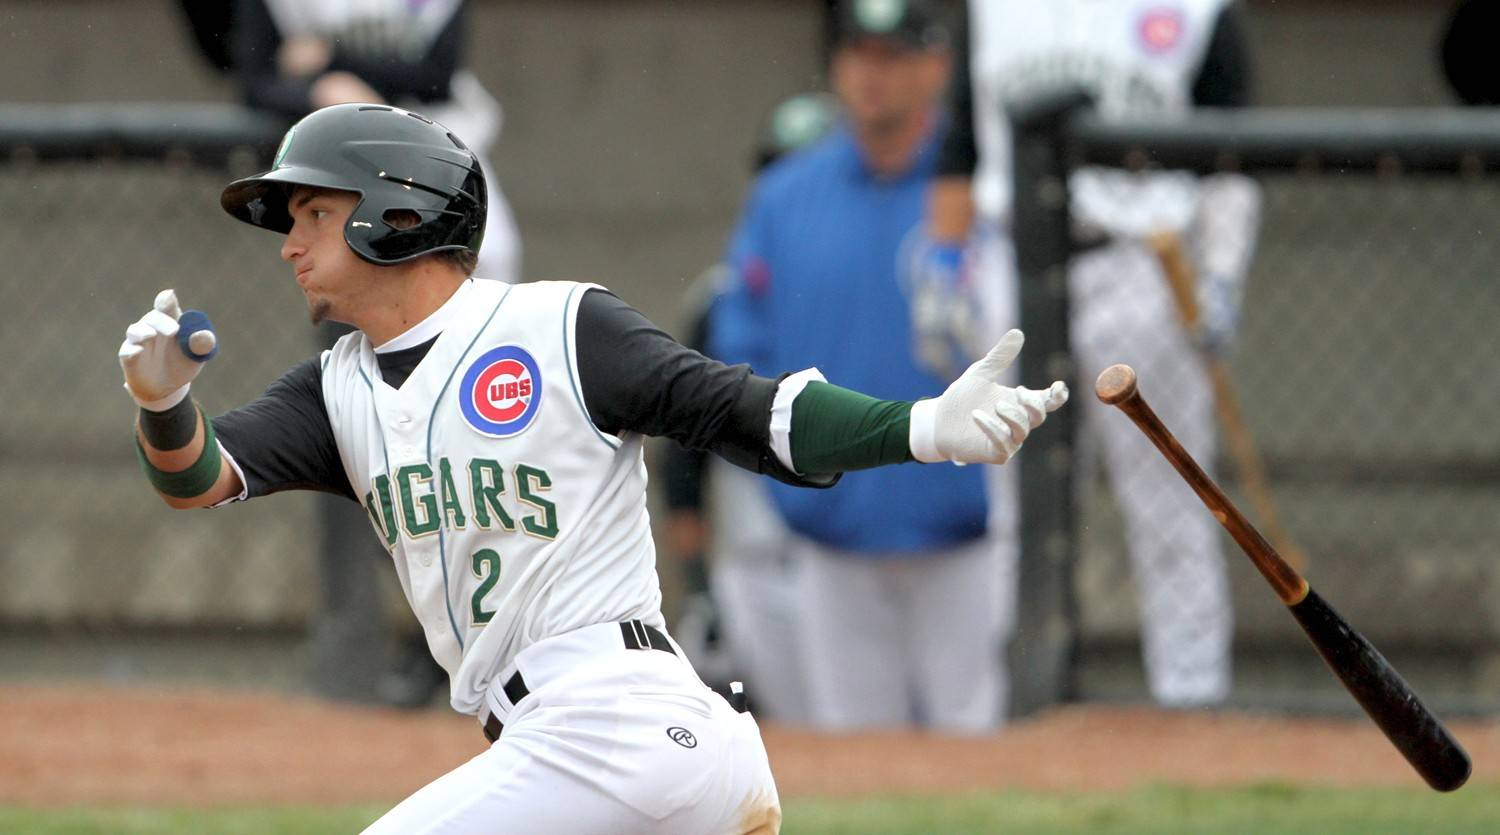 The Kane County Cougars will opening their minor league baseball season on April 3 on the road, with the home opener on April 8 at Fifth Third Bank Ballpark in Geneva.